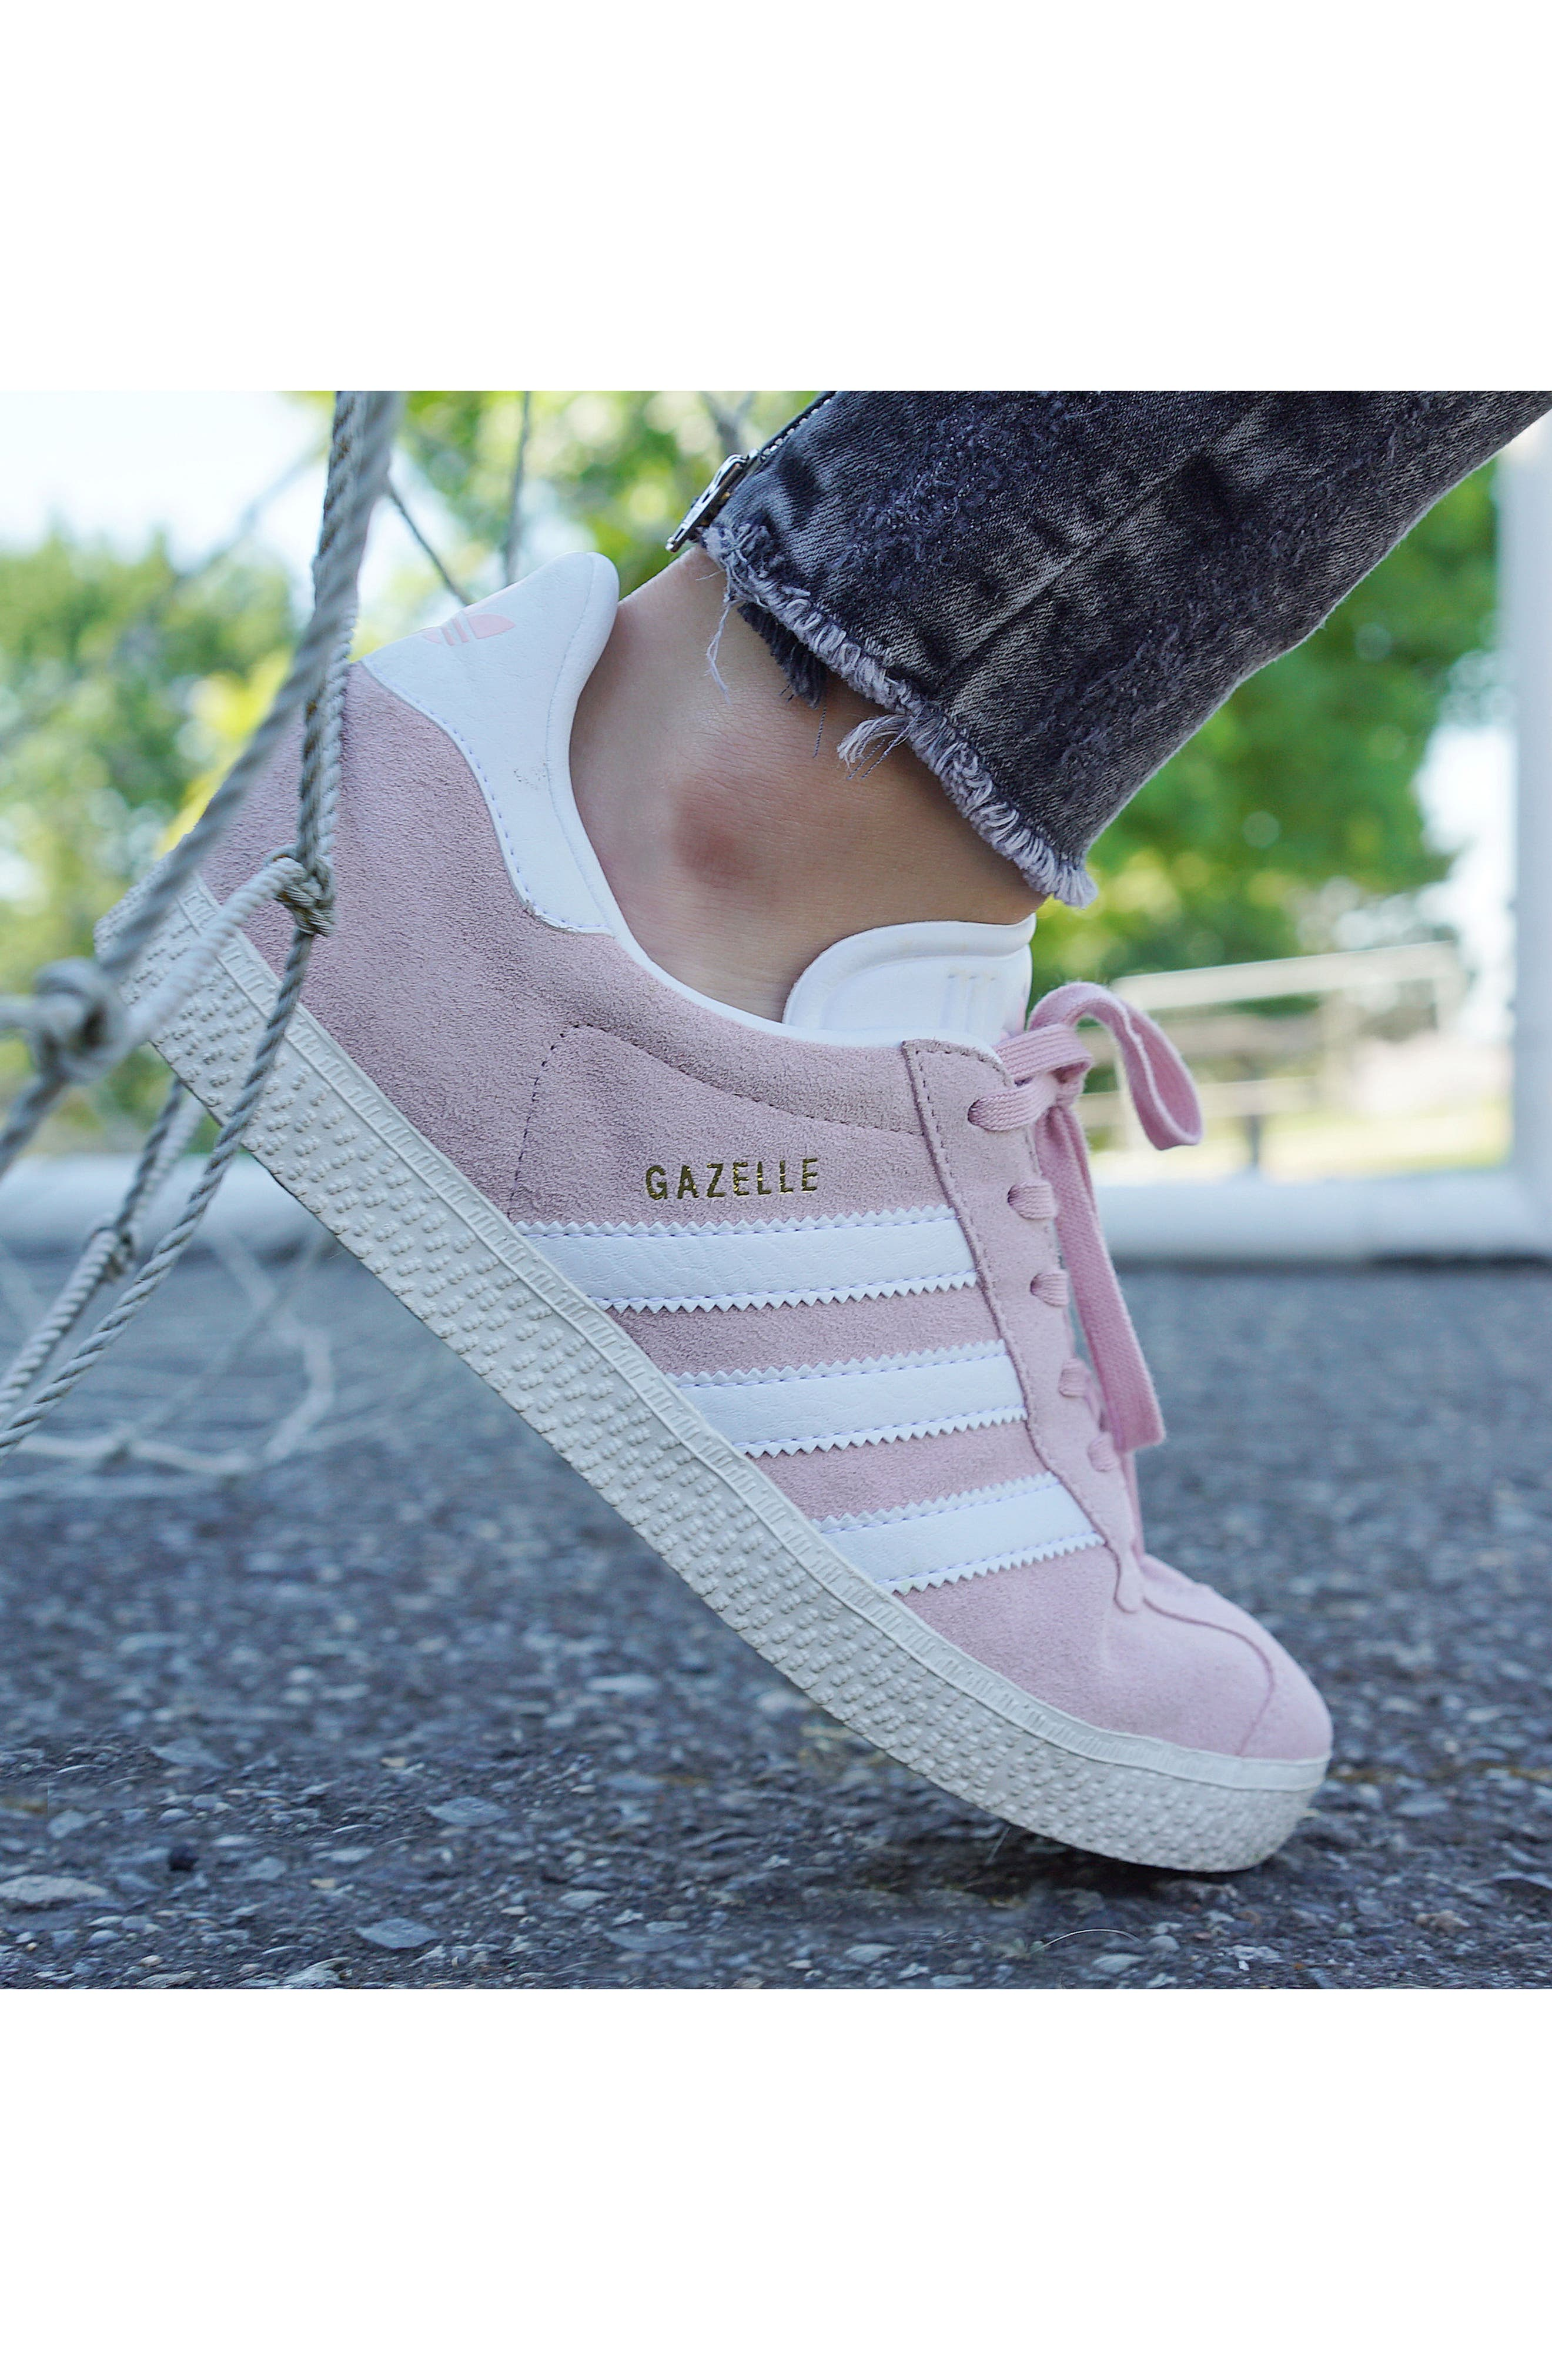 Gazelle Sneaker,                             Alternate thumbnail 12, color,                             682